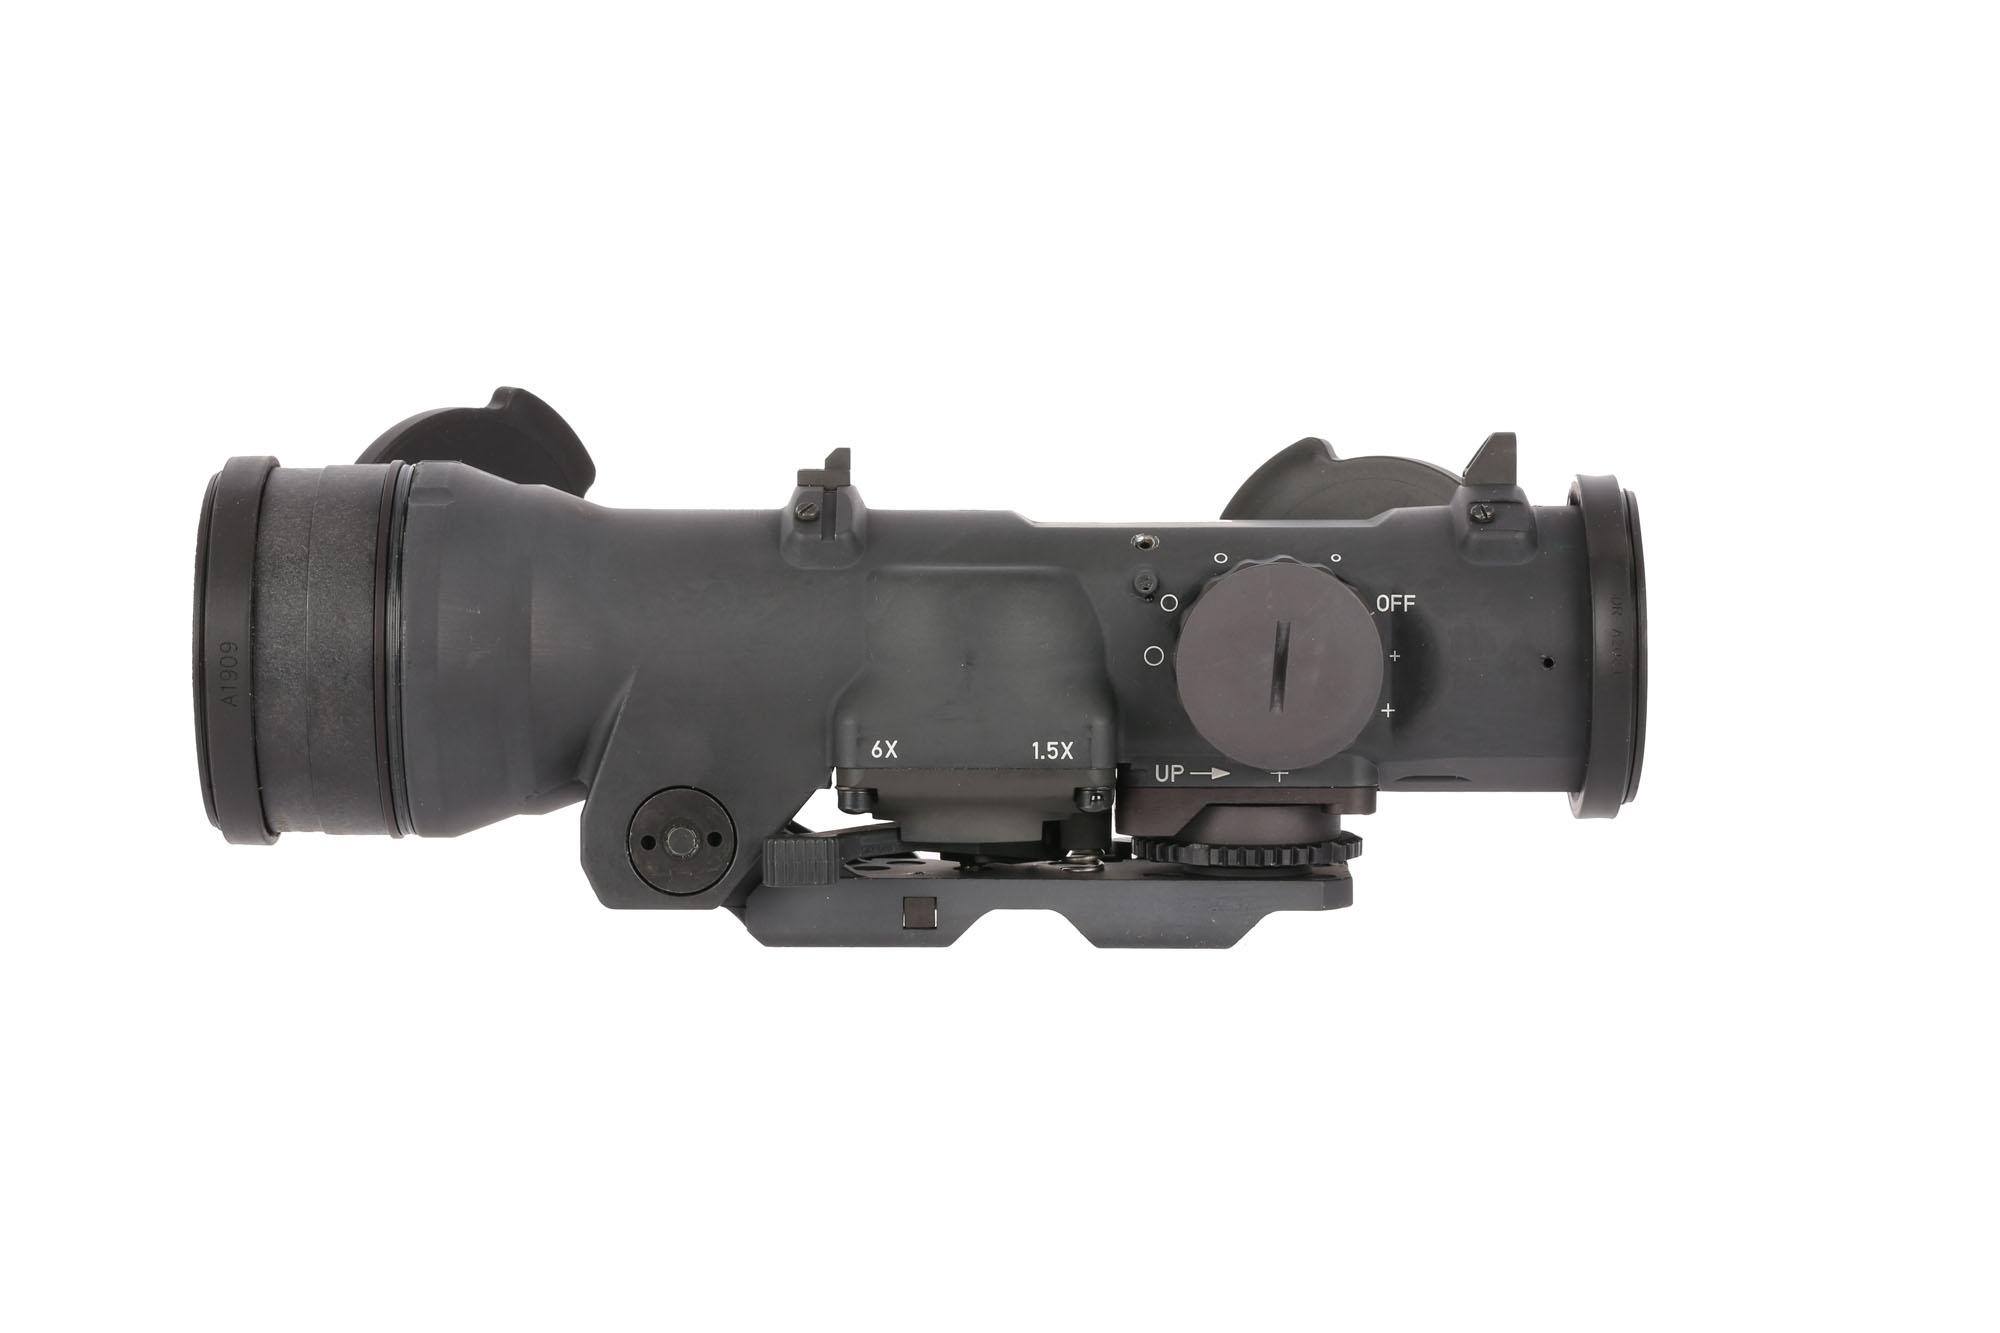 ELCAN SpecterDR Dual Role 1.5x/6x 7.62 Optical Sight - Black